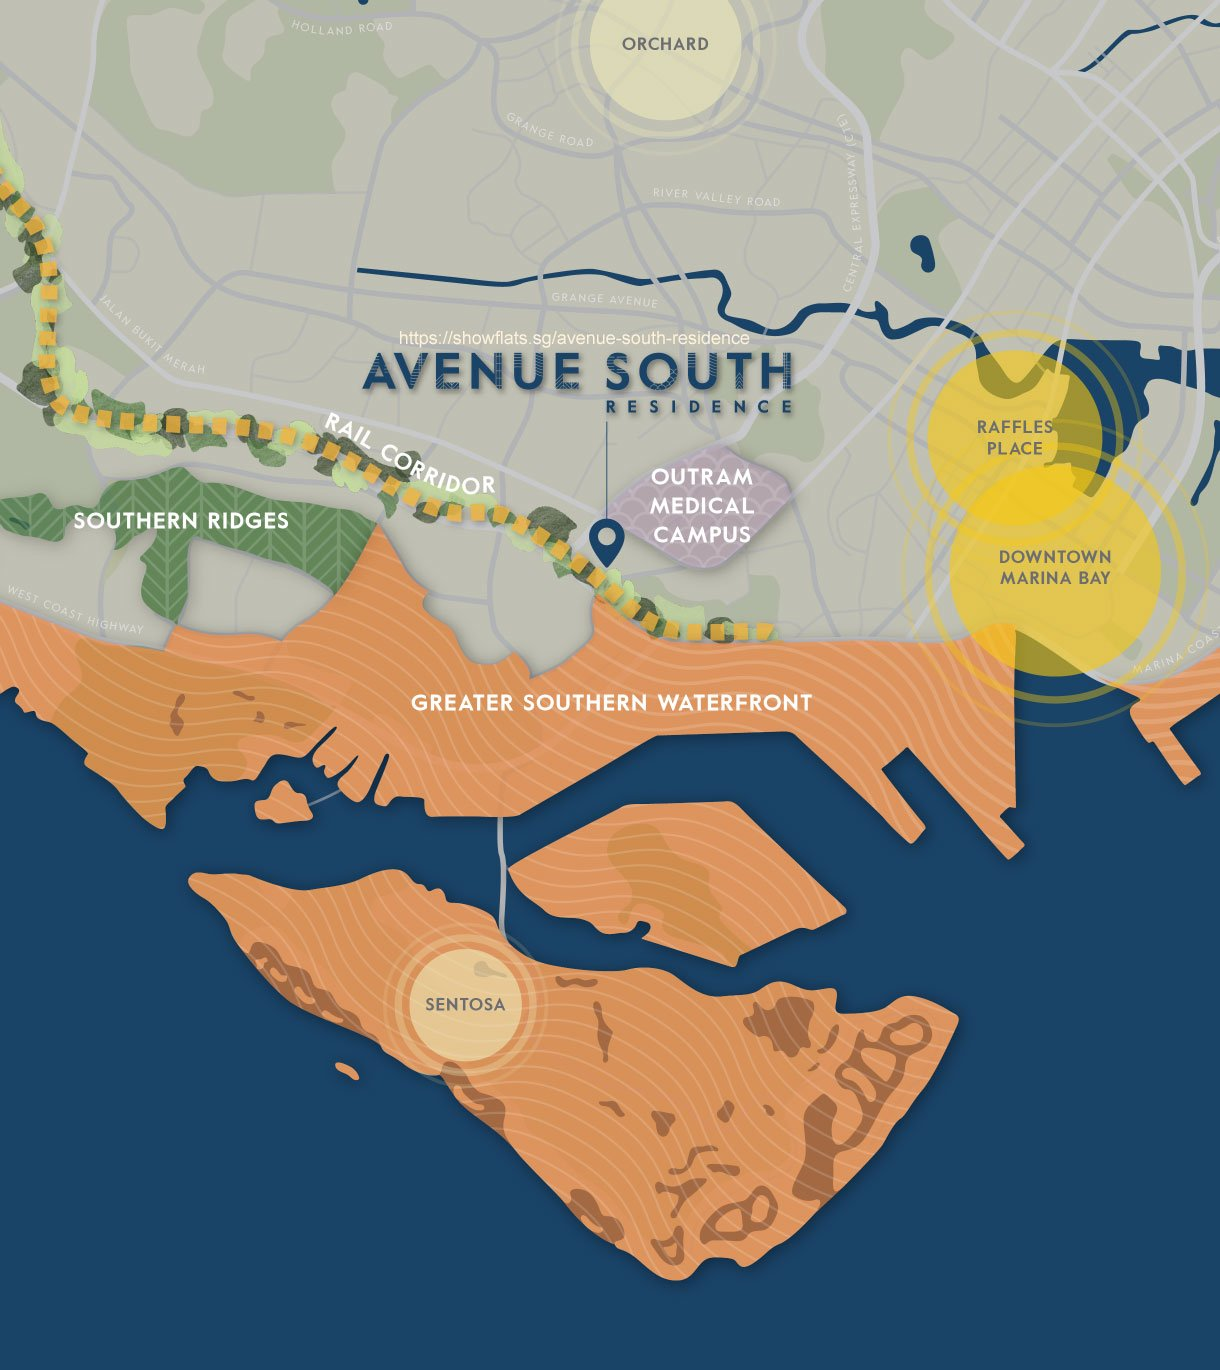 Avenue_South_Residence_doorstes_to_Greater_Southern_Waterfront